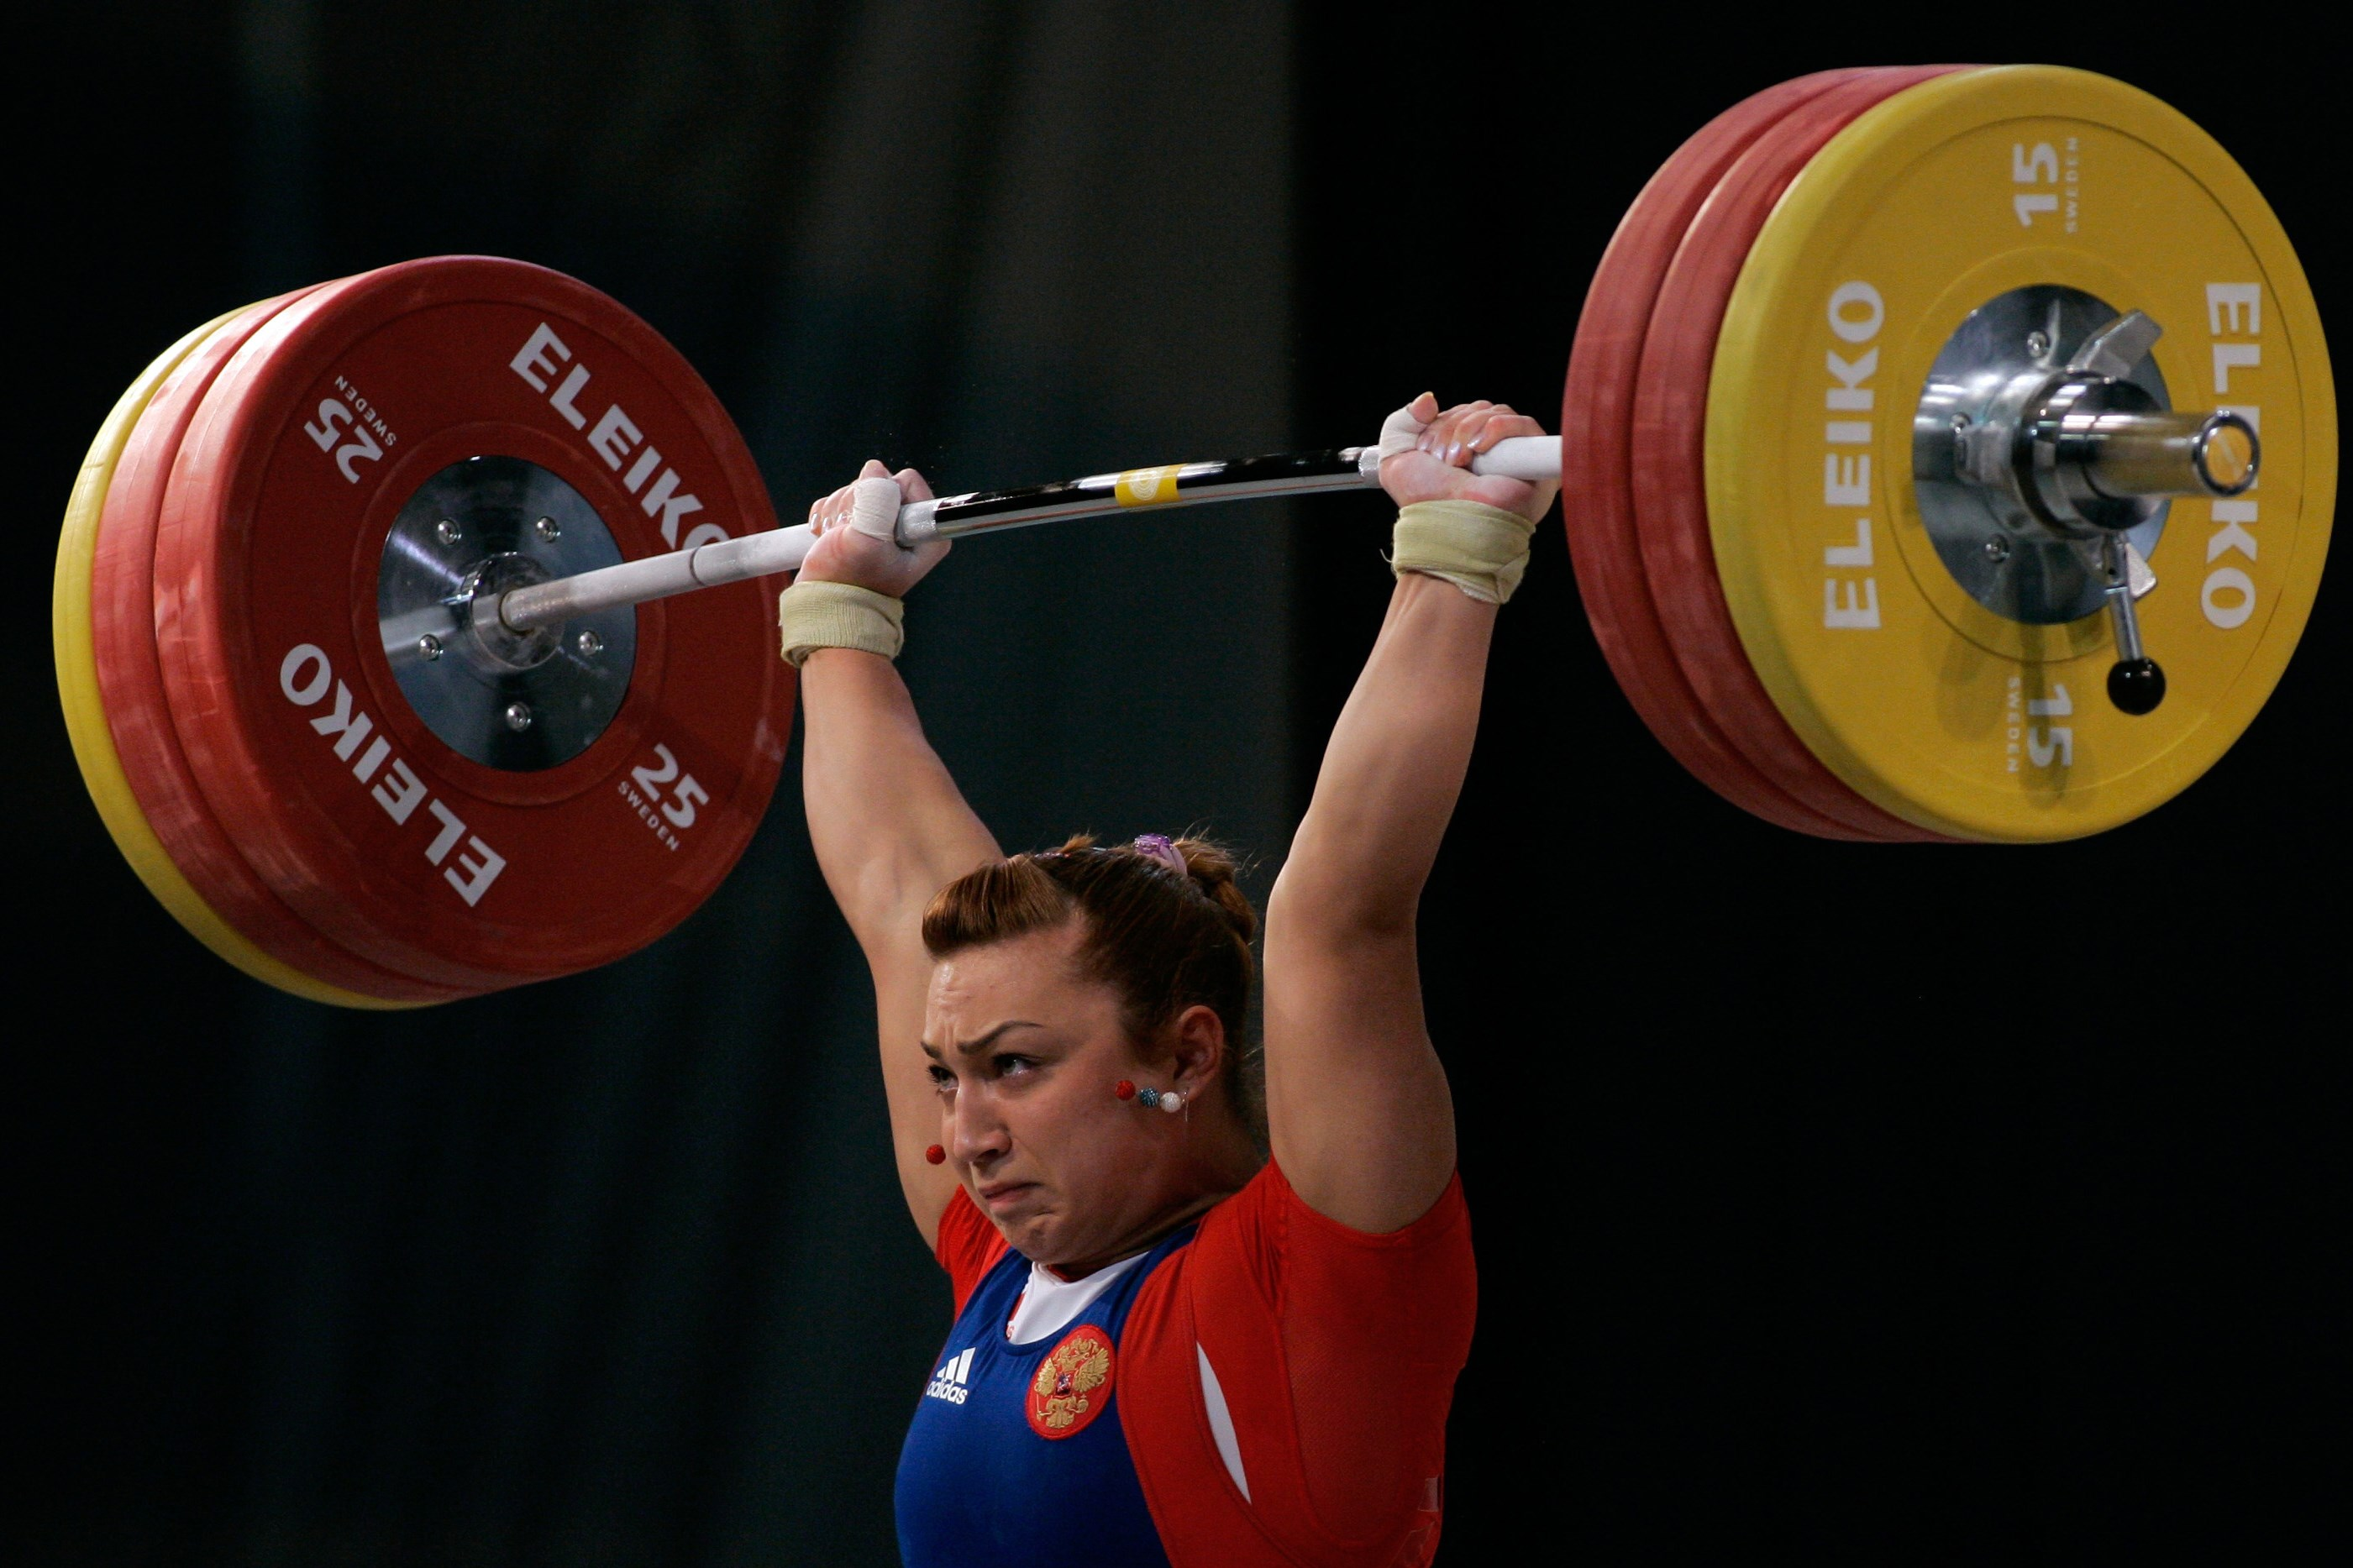 FILE - In this Saturday, April 10, 2010 file photo, Russia's Nadezhda Yevstukhina successfully lifts a weight in the Women's 75kg category, during the European Weightlifting Championship in Minsk, Belarus. Fourteen Russian athletes who competed in the 200